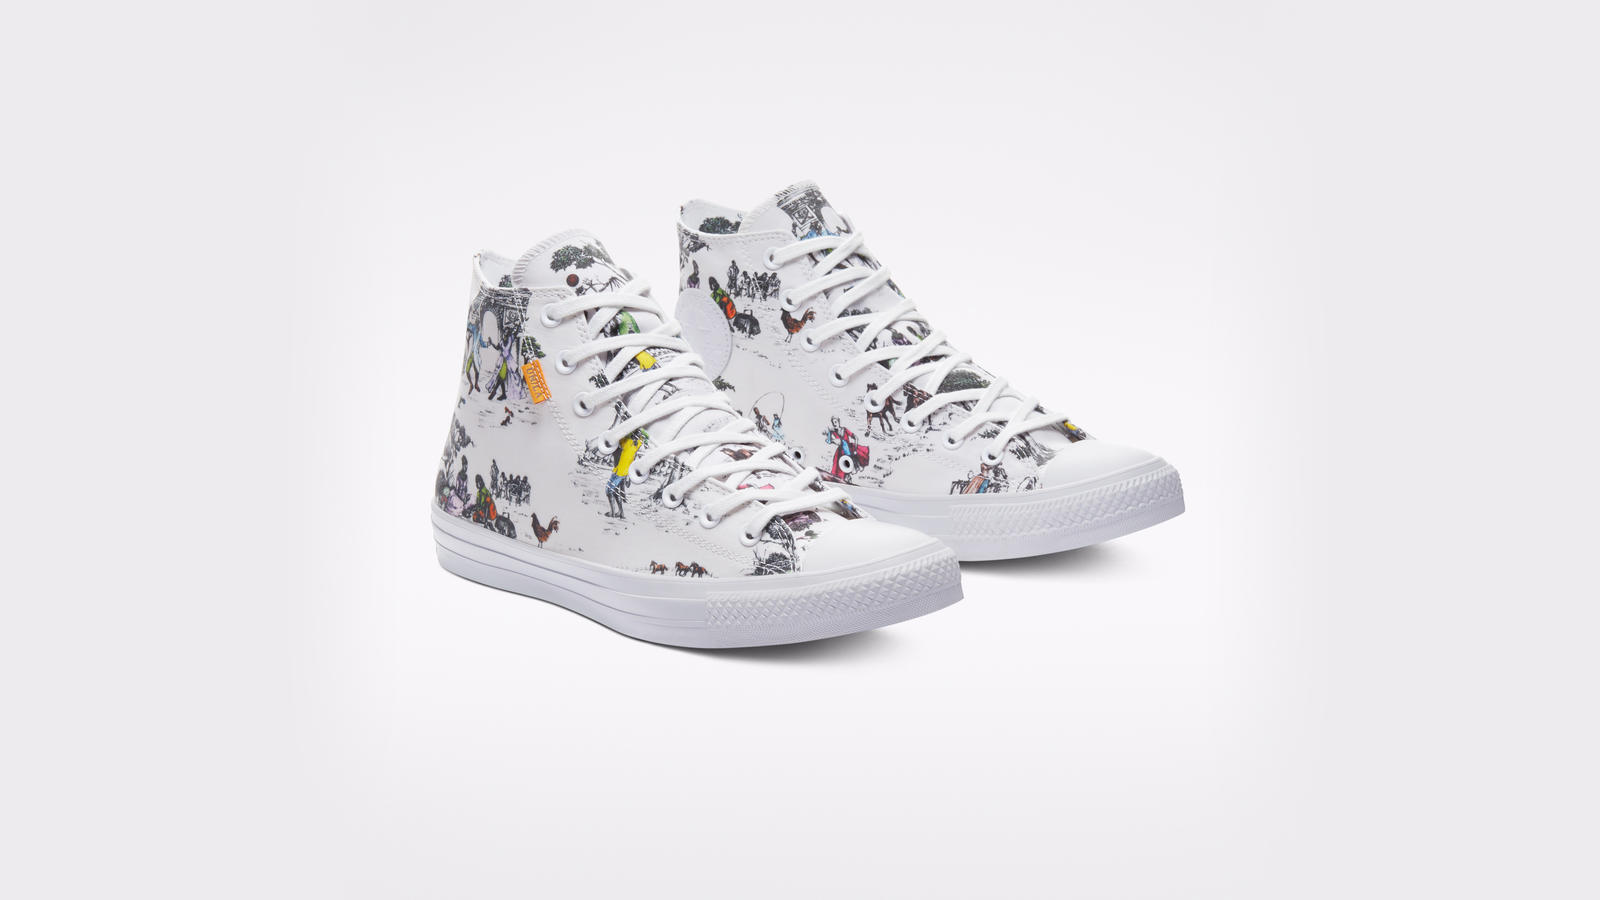 Converse x UNION x Sheila Bridges Harlem Toile Collaboration 7